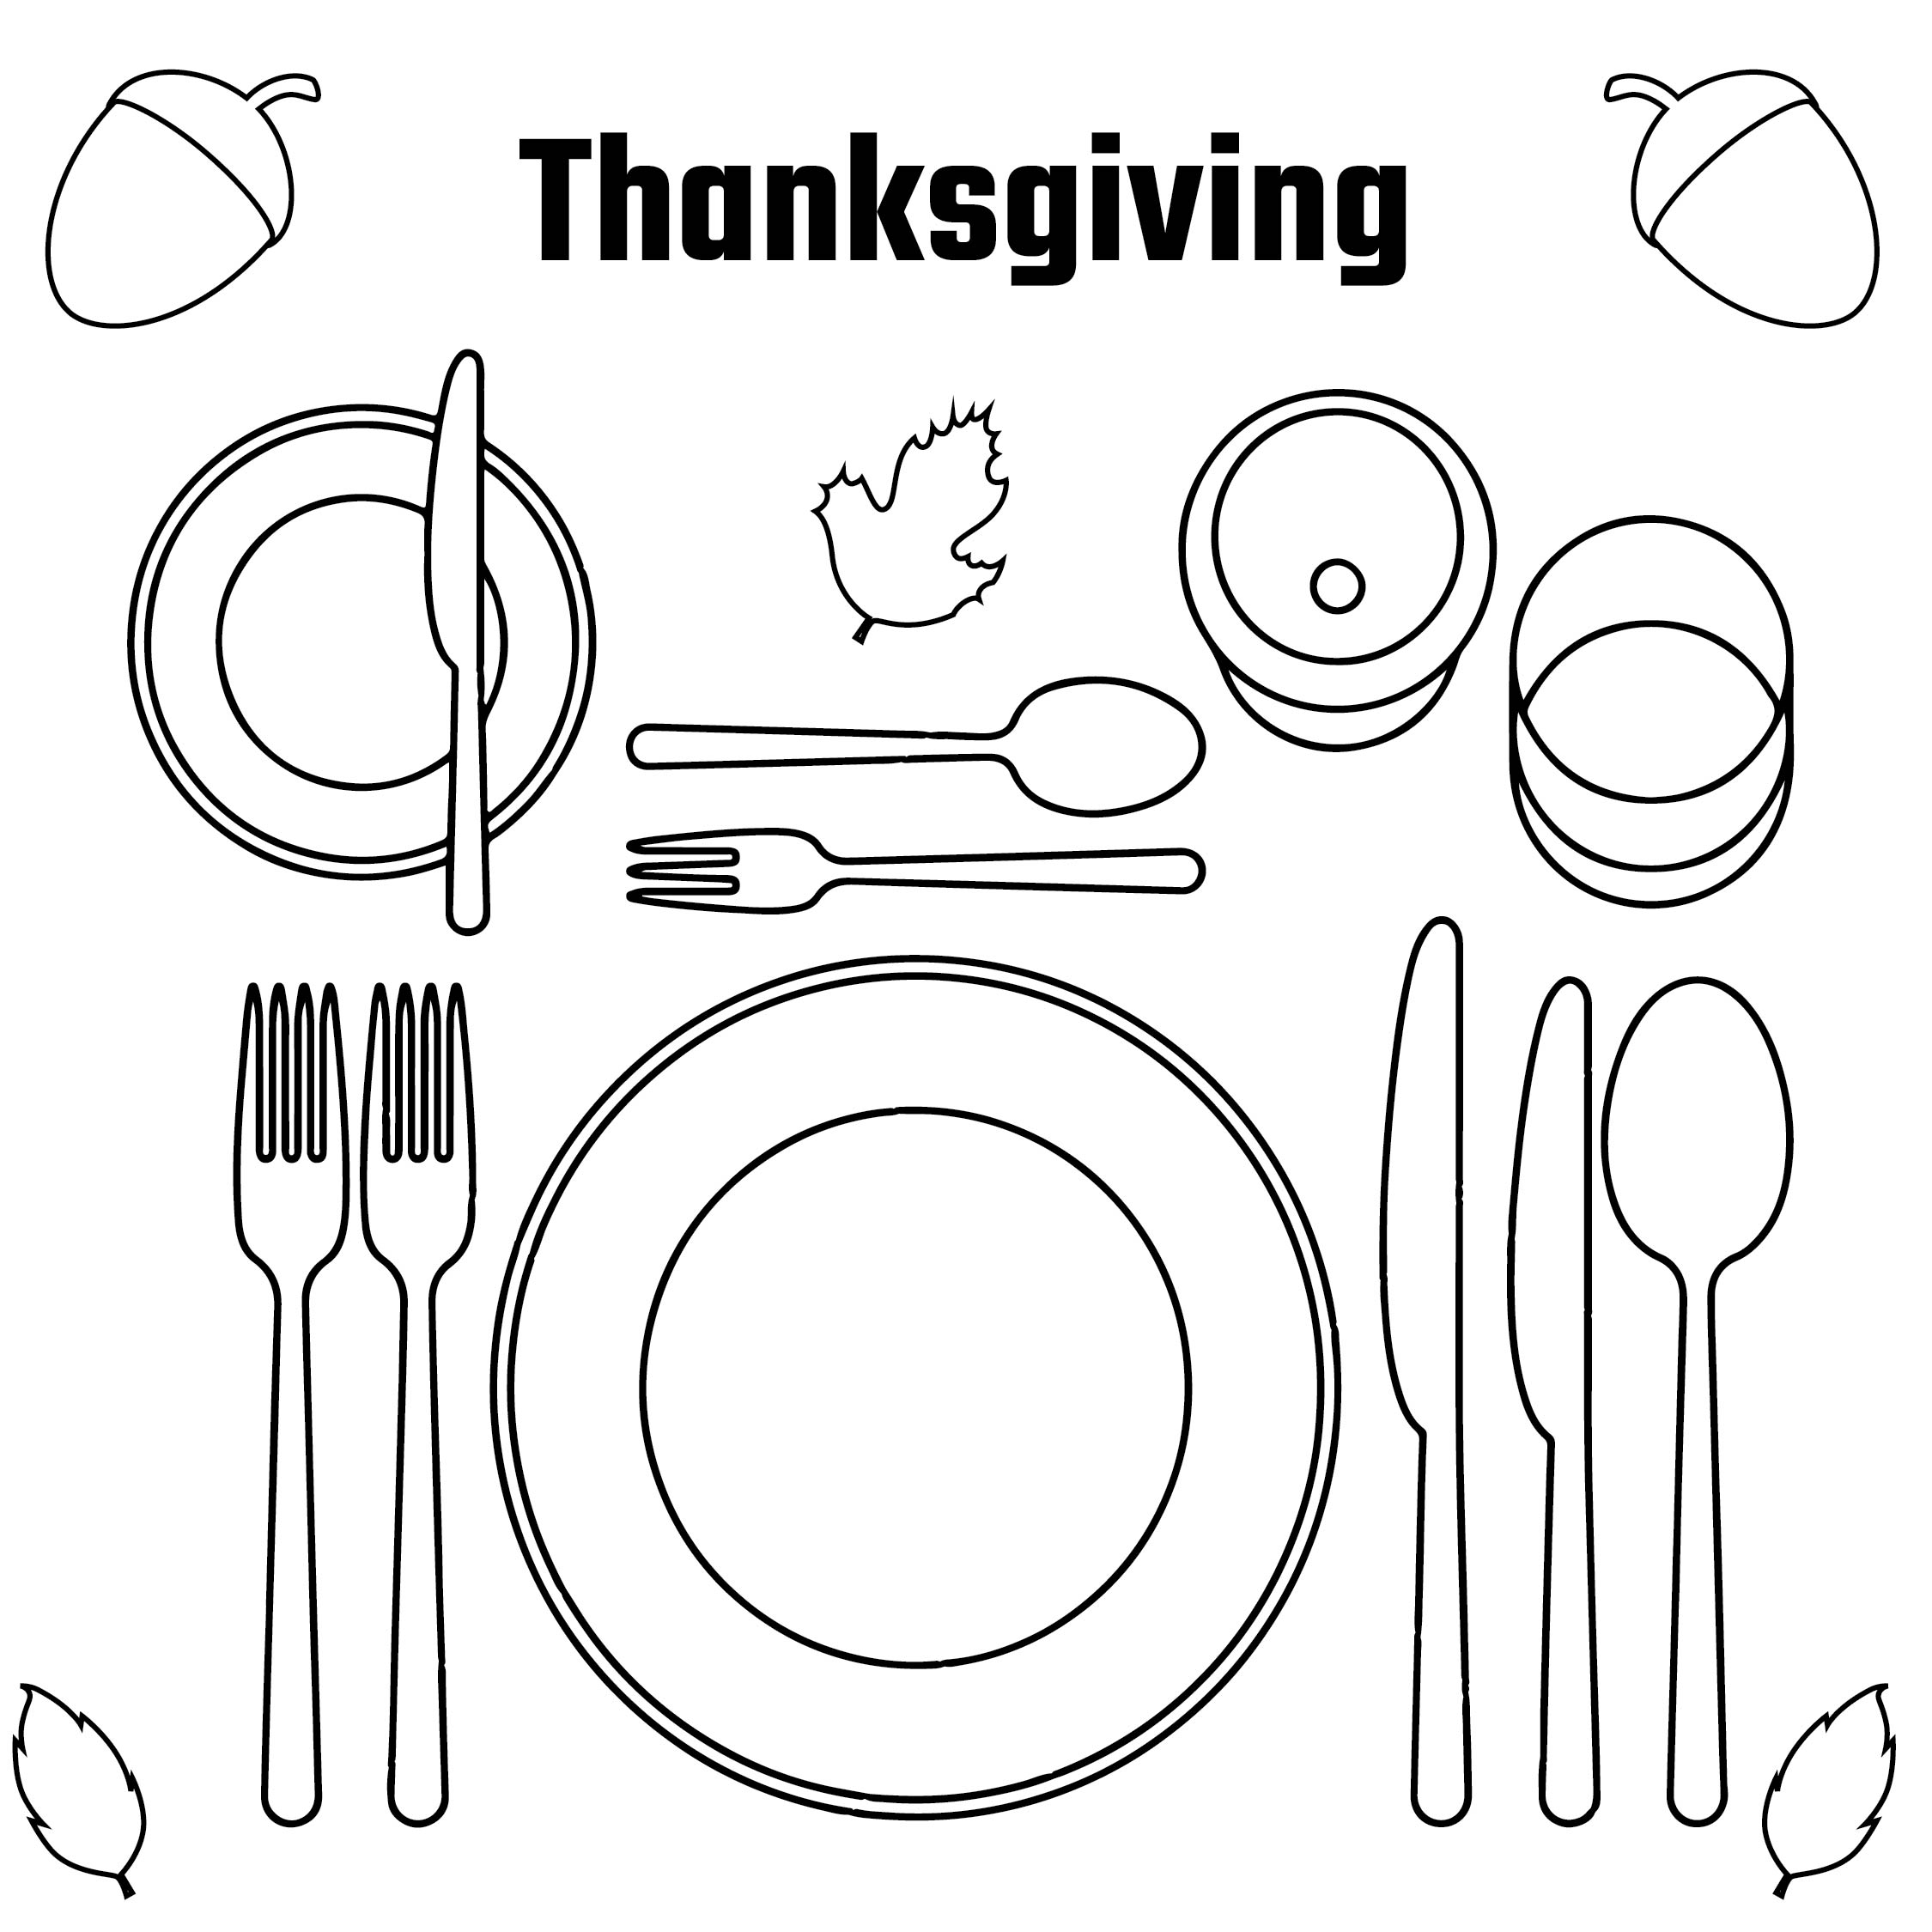 Printable Thanksgiving Placemats To Color